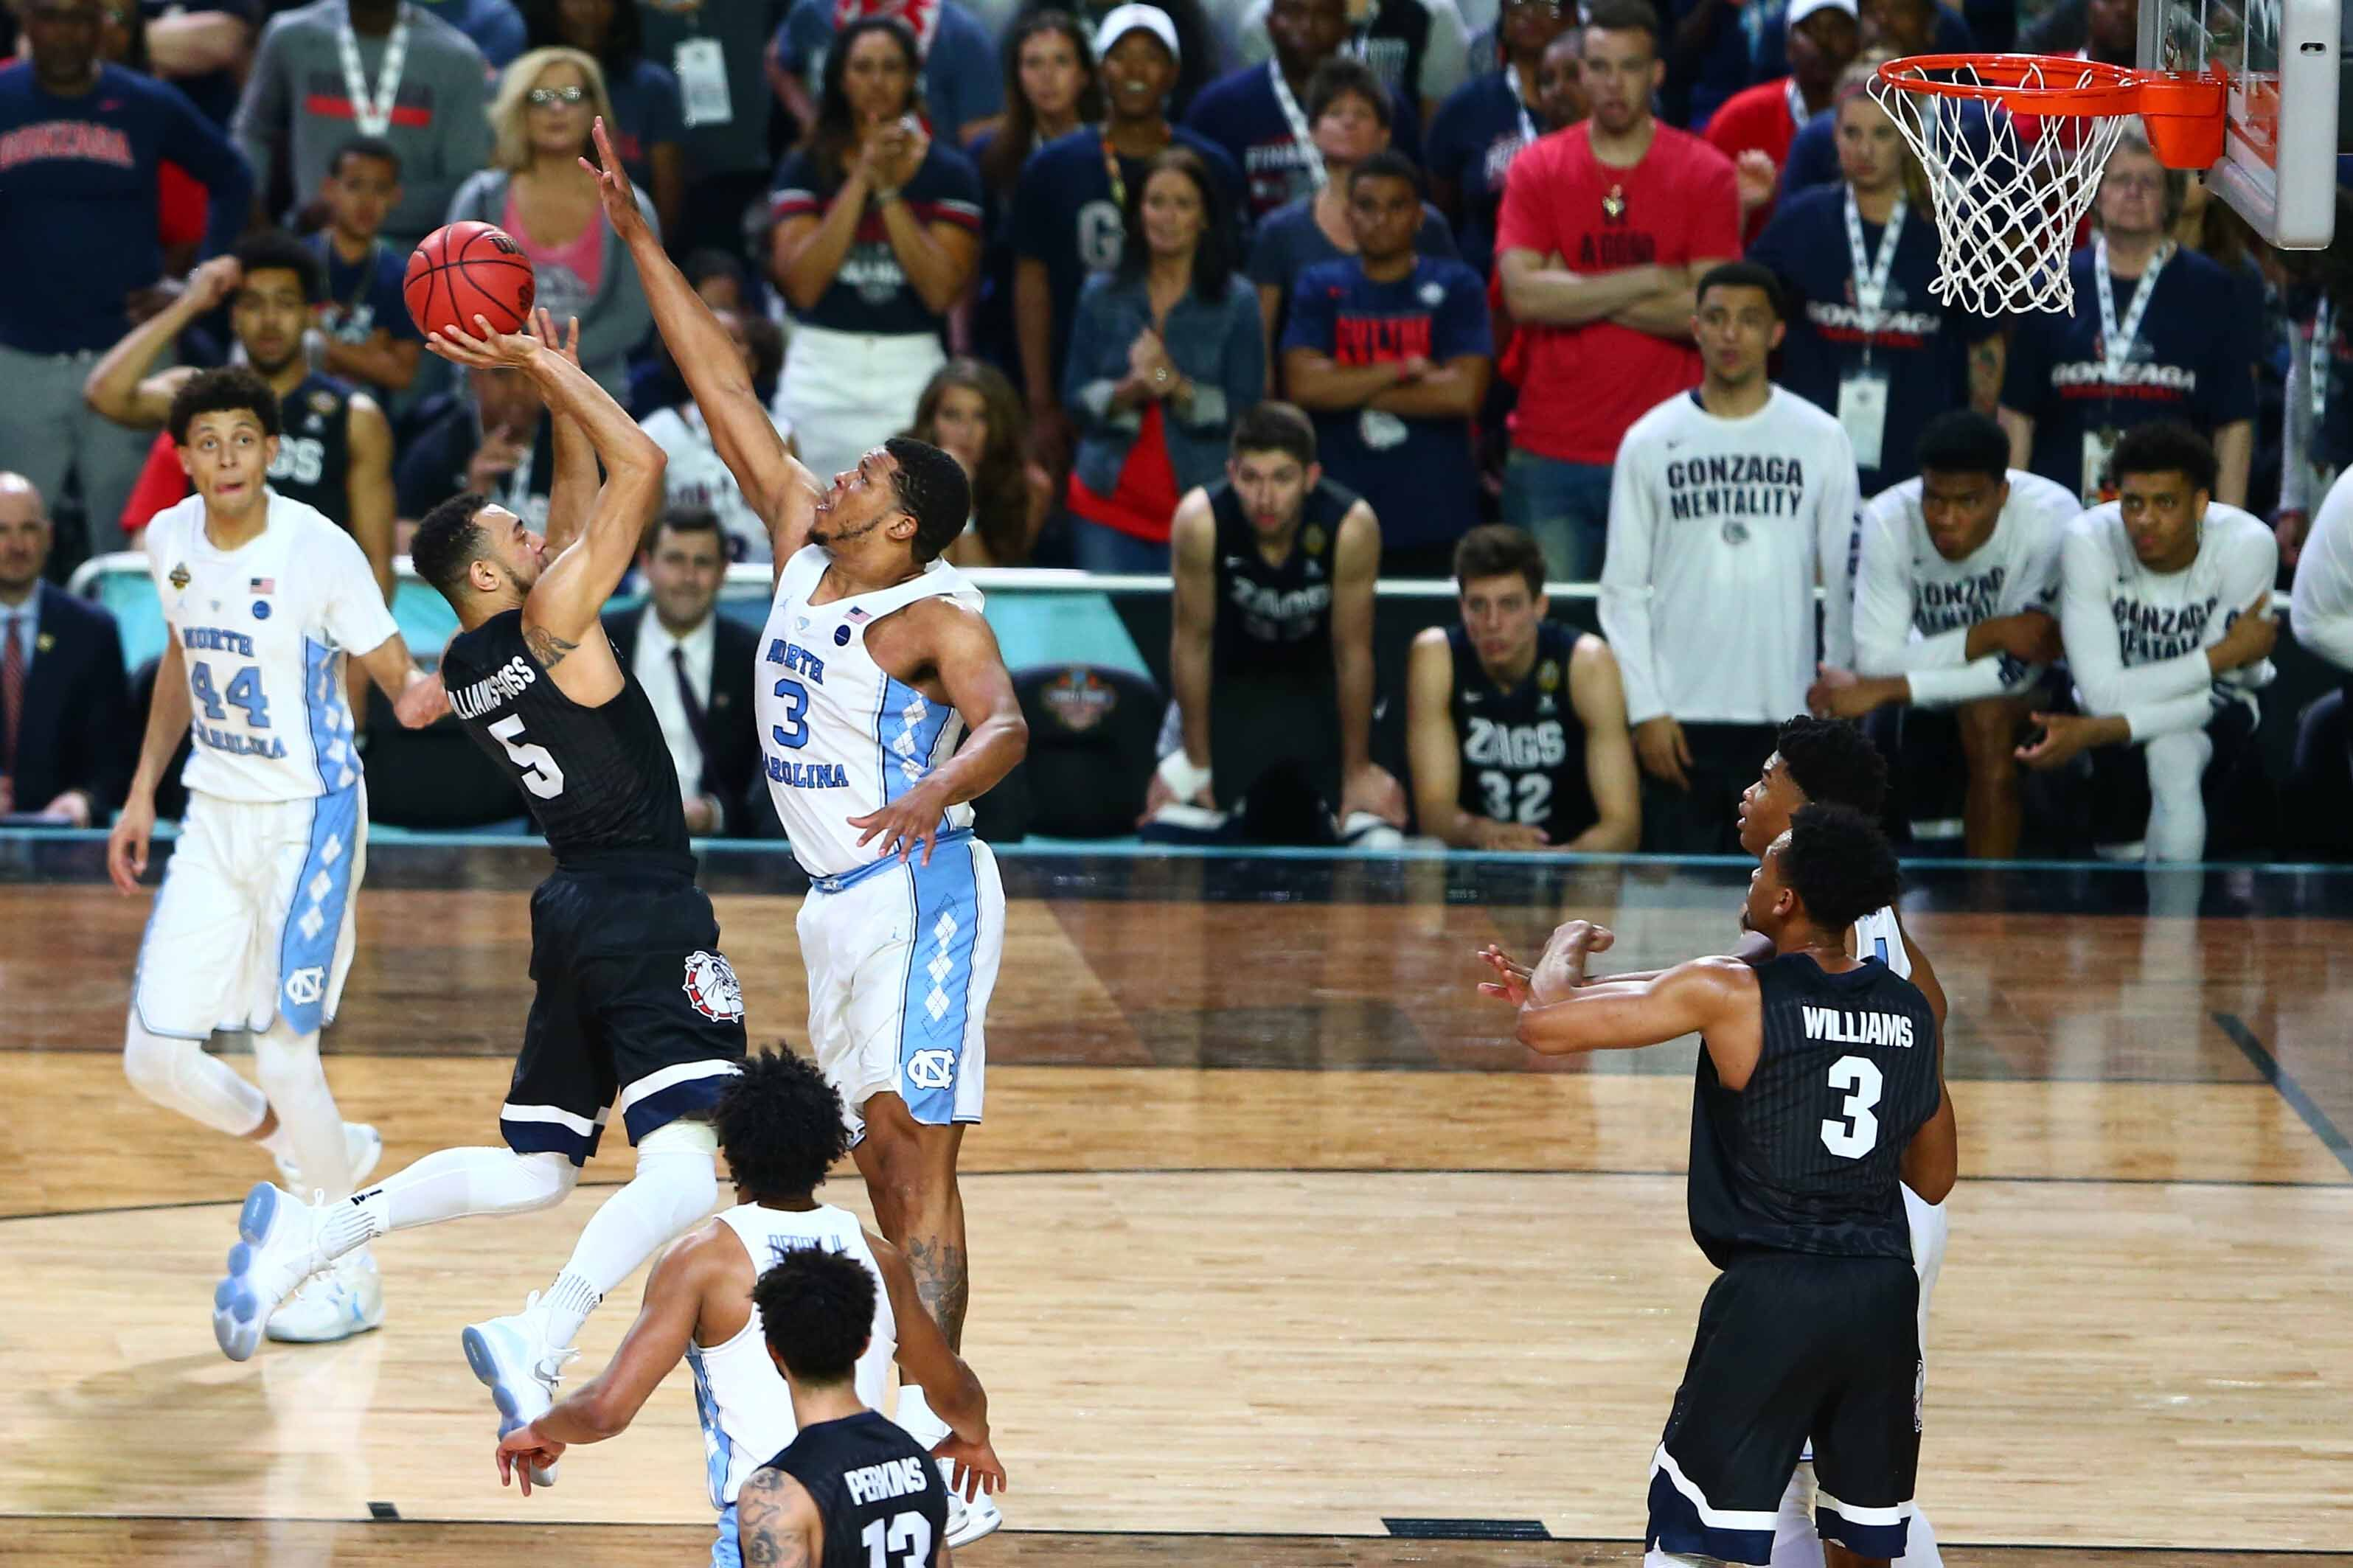 Highlights from the national championship gonzaga vs north carolina - National Championship 2017 Gonzaga Vs North Carolina Highlights Score And Recap